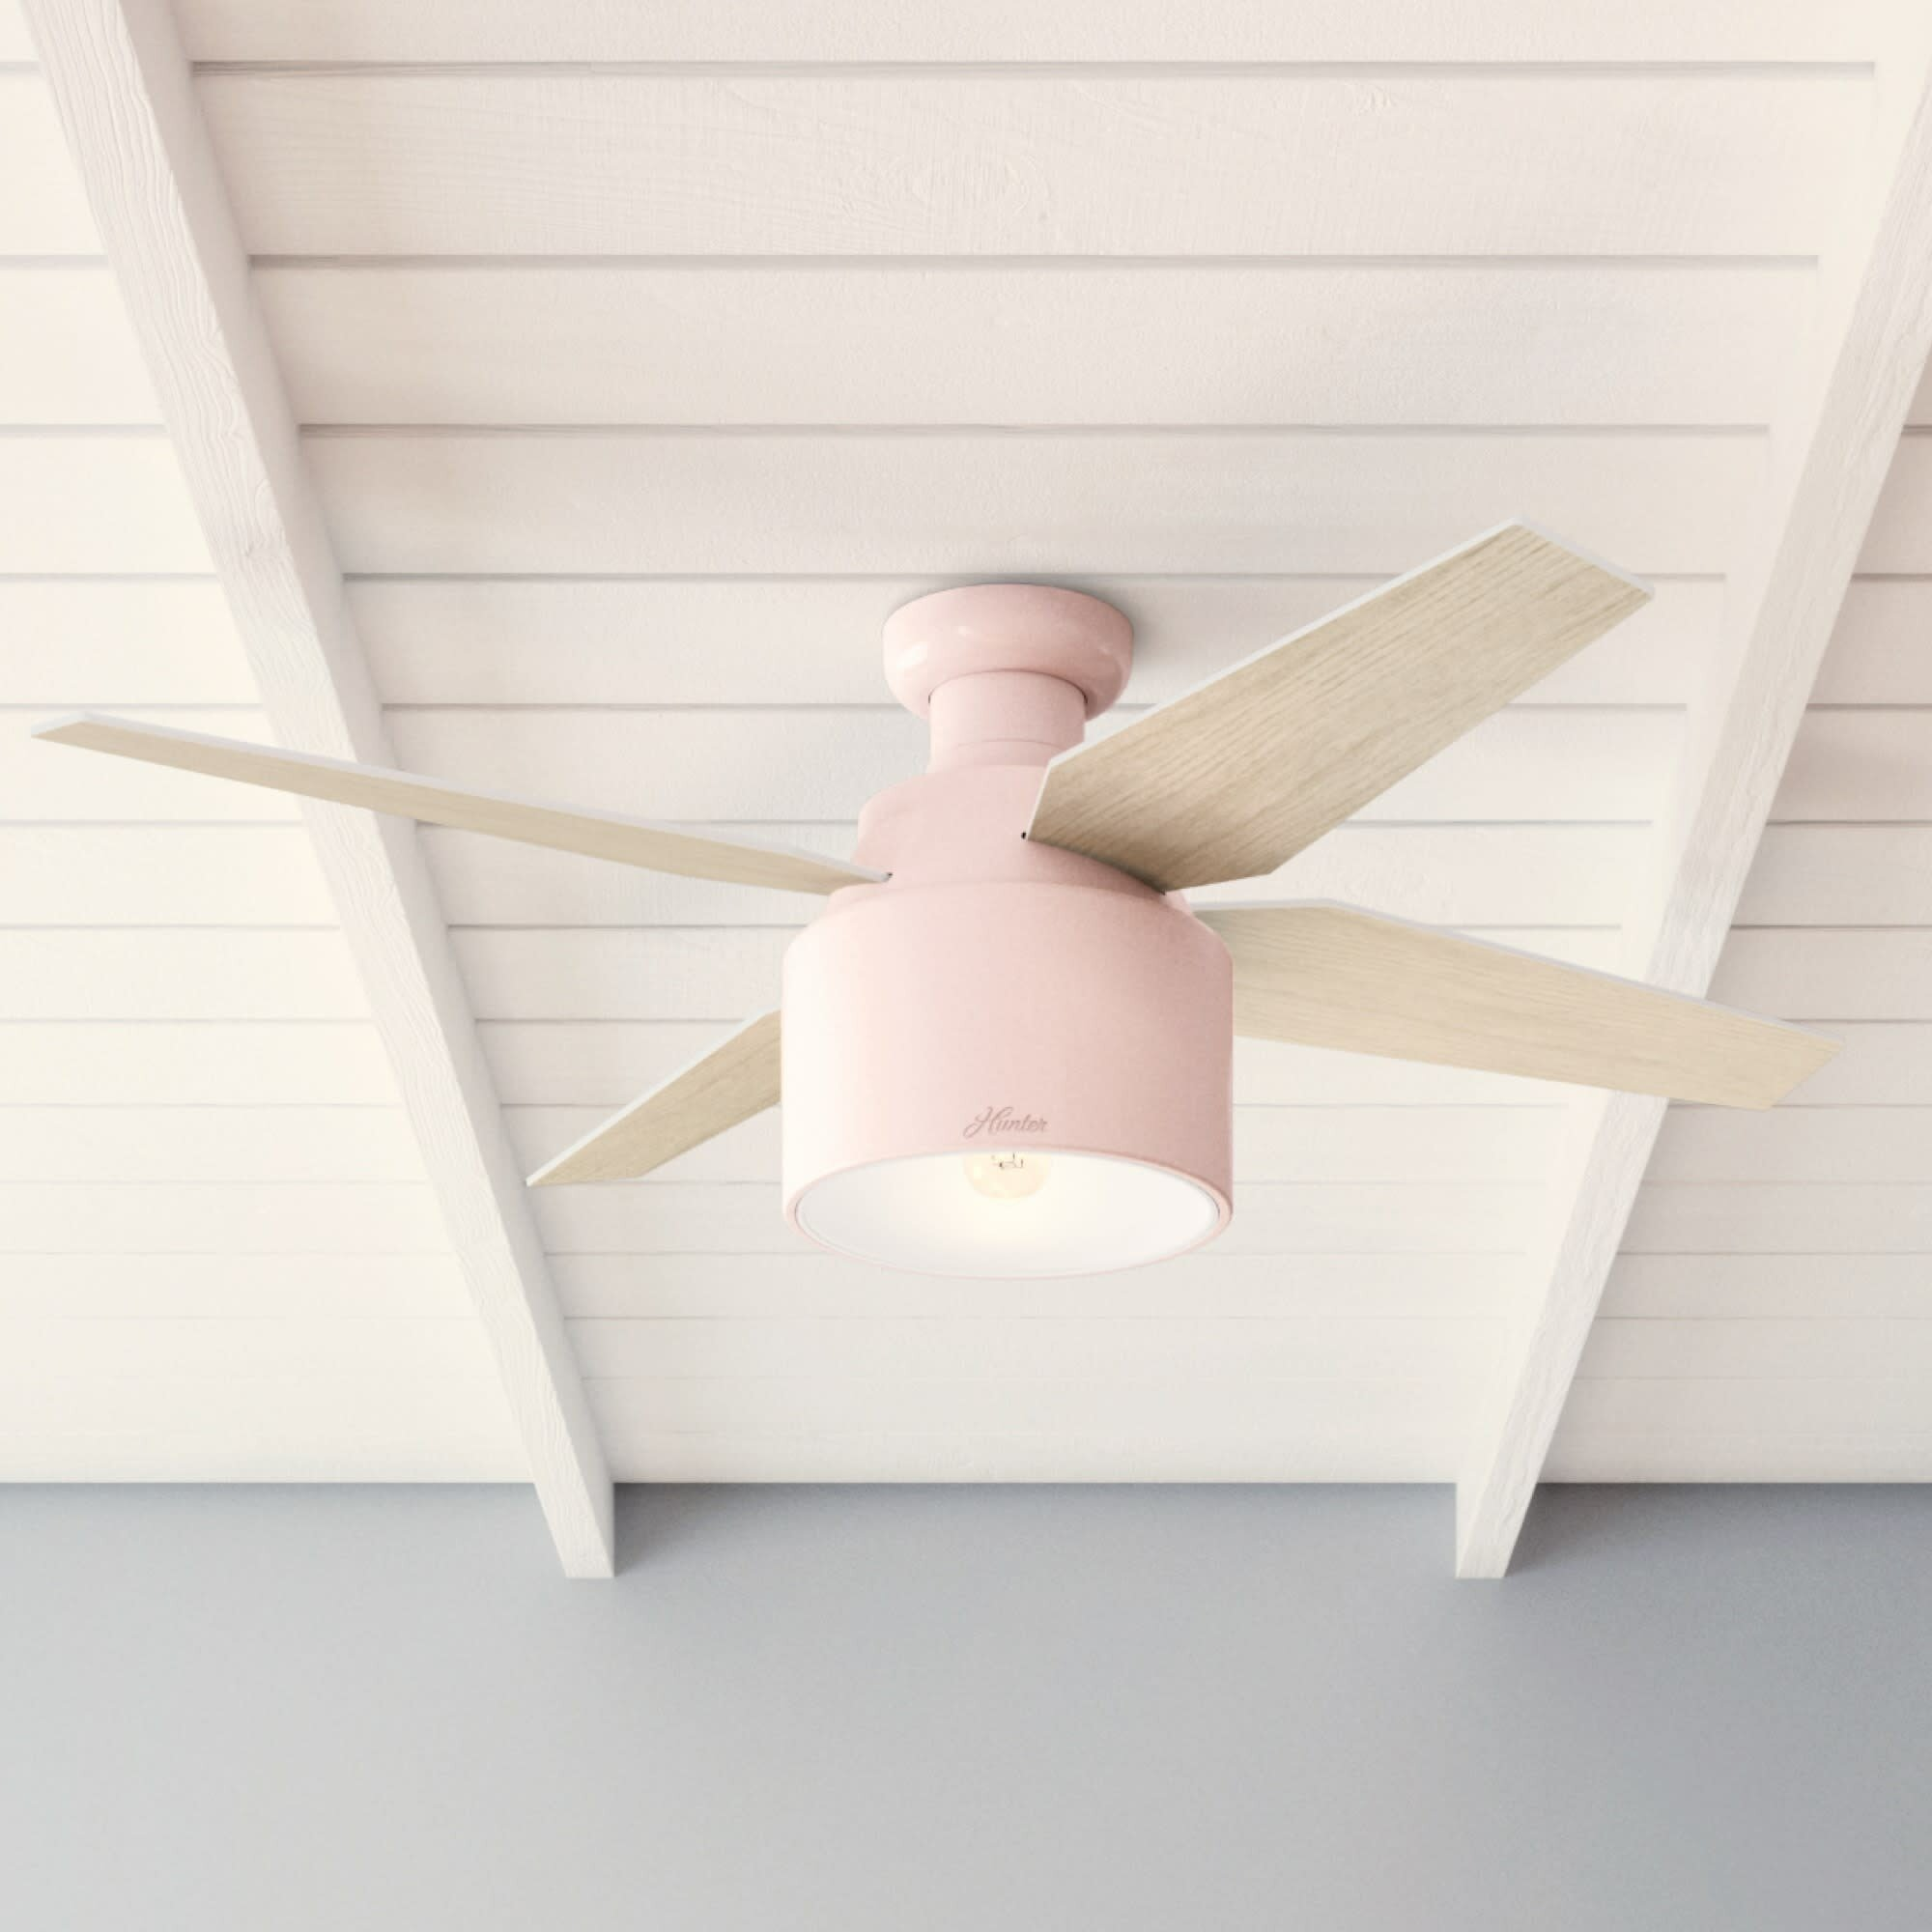 Image of: Hunter Fan 52 Cranbrook 4 Blade Flush Mount Ceiling Fan With Remote Control And Light Kit Included Reviews Wayfair